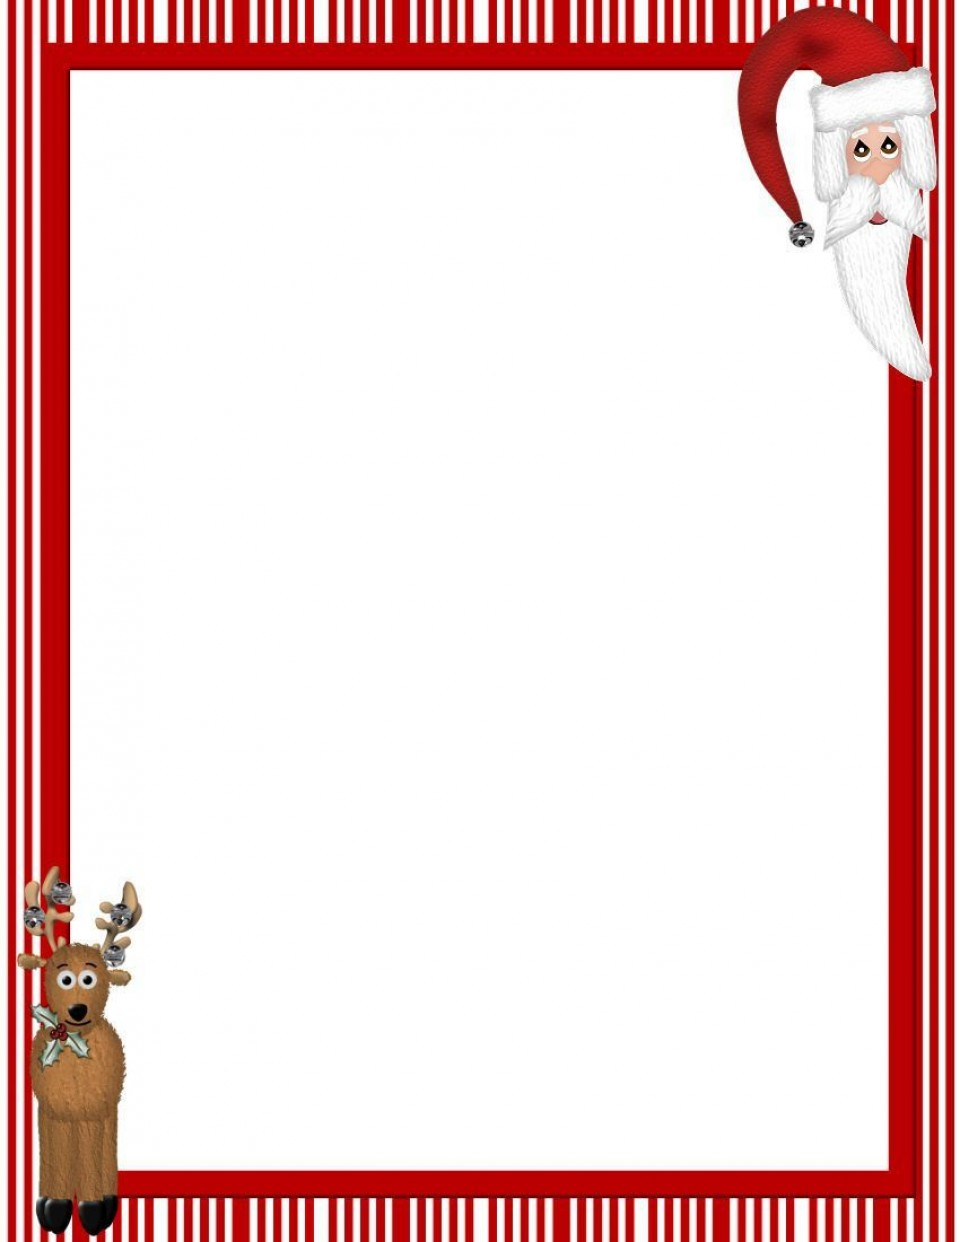 007 Excellent Christma Stationery Template Word Free High Resolution  Religiou For Downloadable960